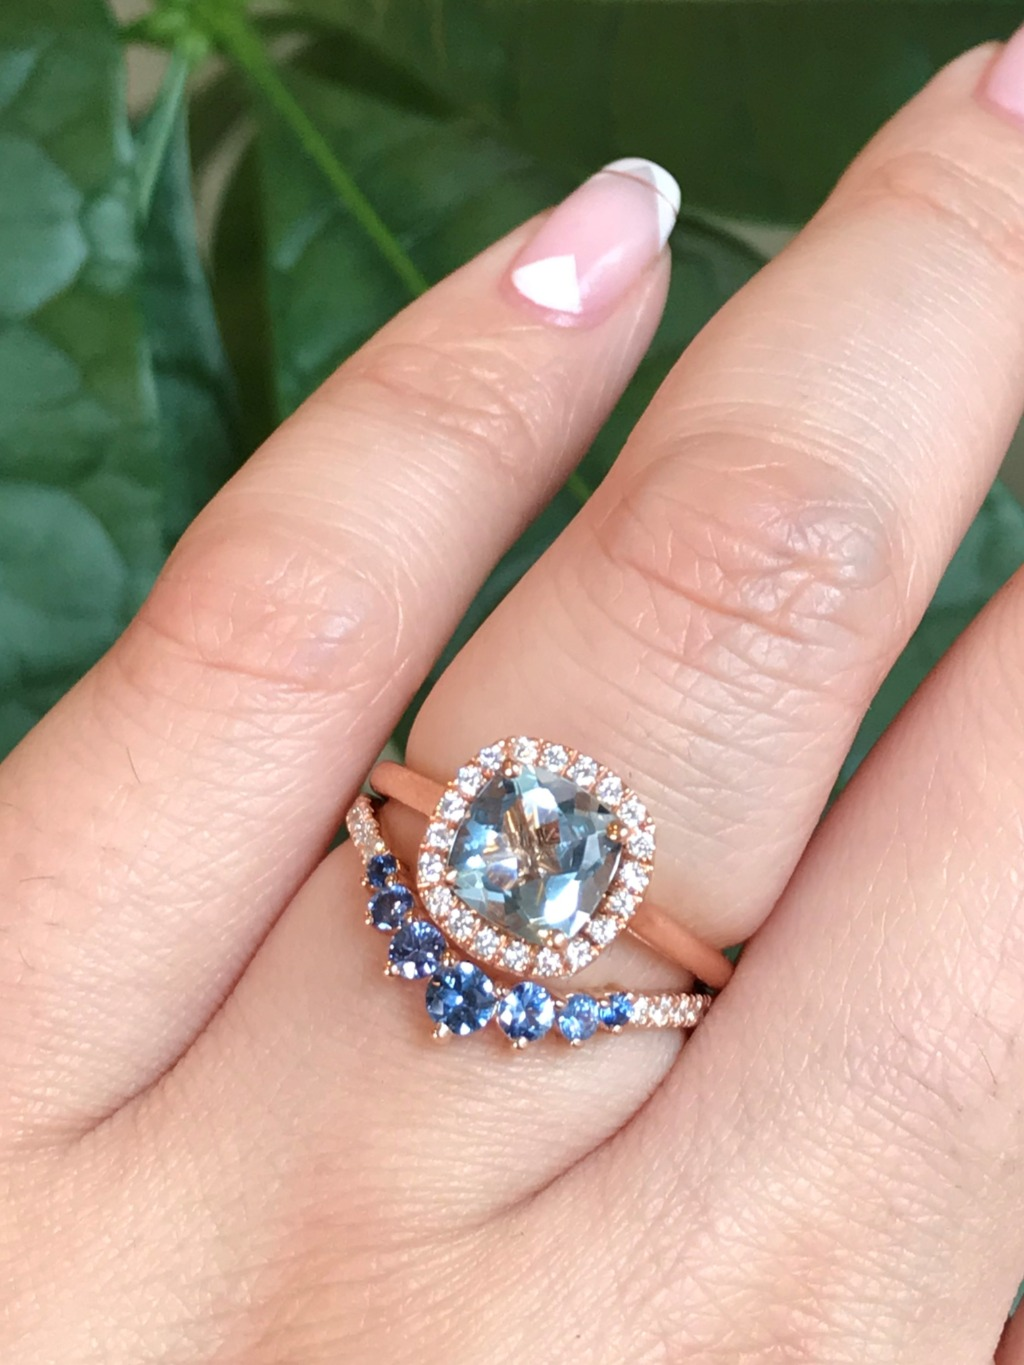 Aquamarine + Aqua Blue Sapphire, it's only right they belong together in a bridal set ~ On top is a Cushion Cut Aquamarine Halo Engagement